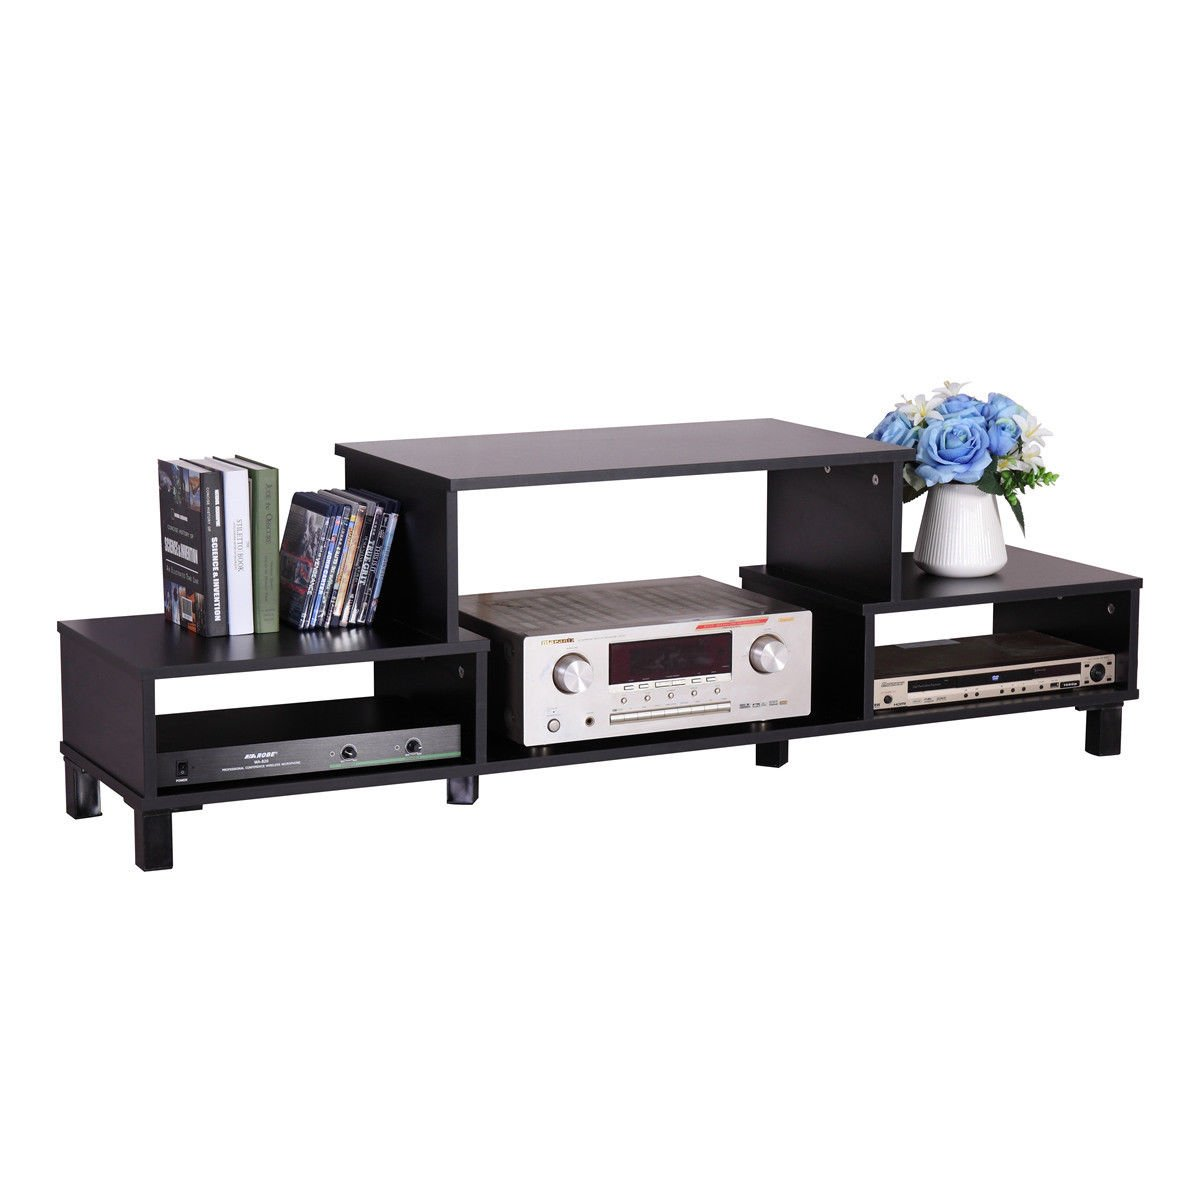 LAZYMOON Media Cabinet Table Home TV Stand Entertainment Center Wood Storage Console, Black